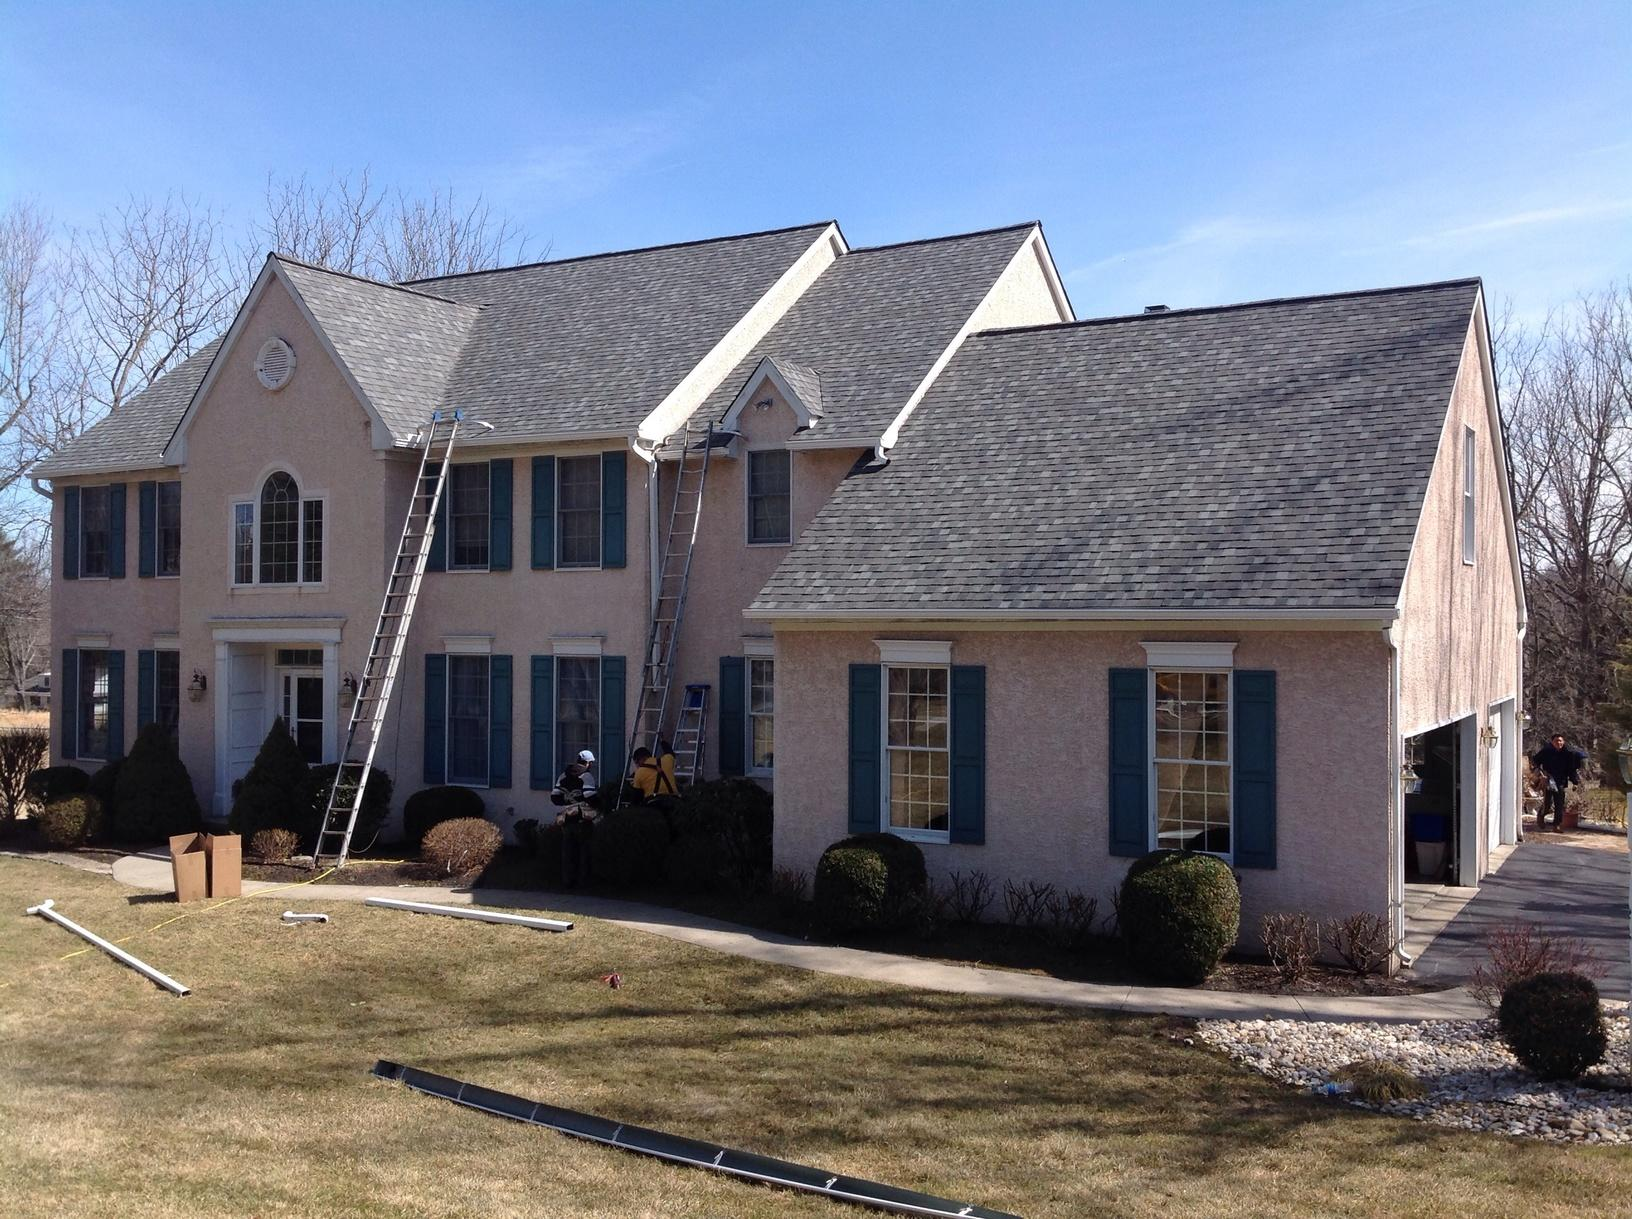 Roof Replacement in West Chester, PA - After Photo